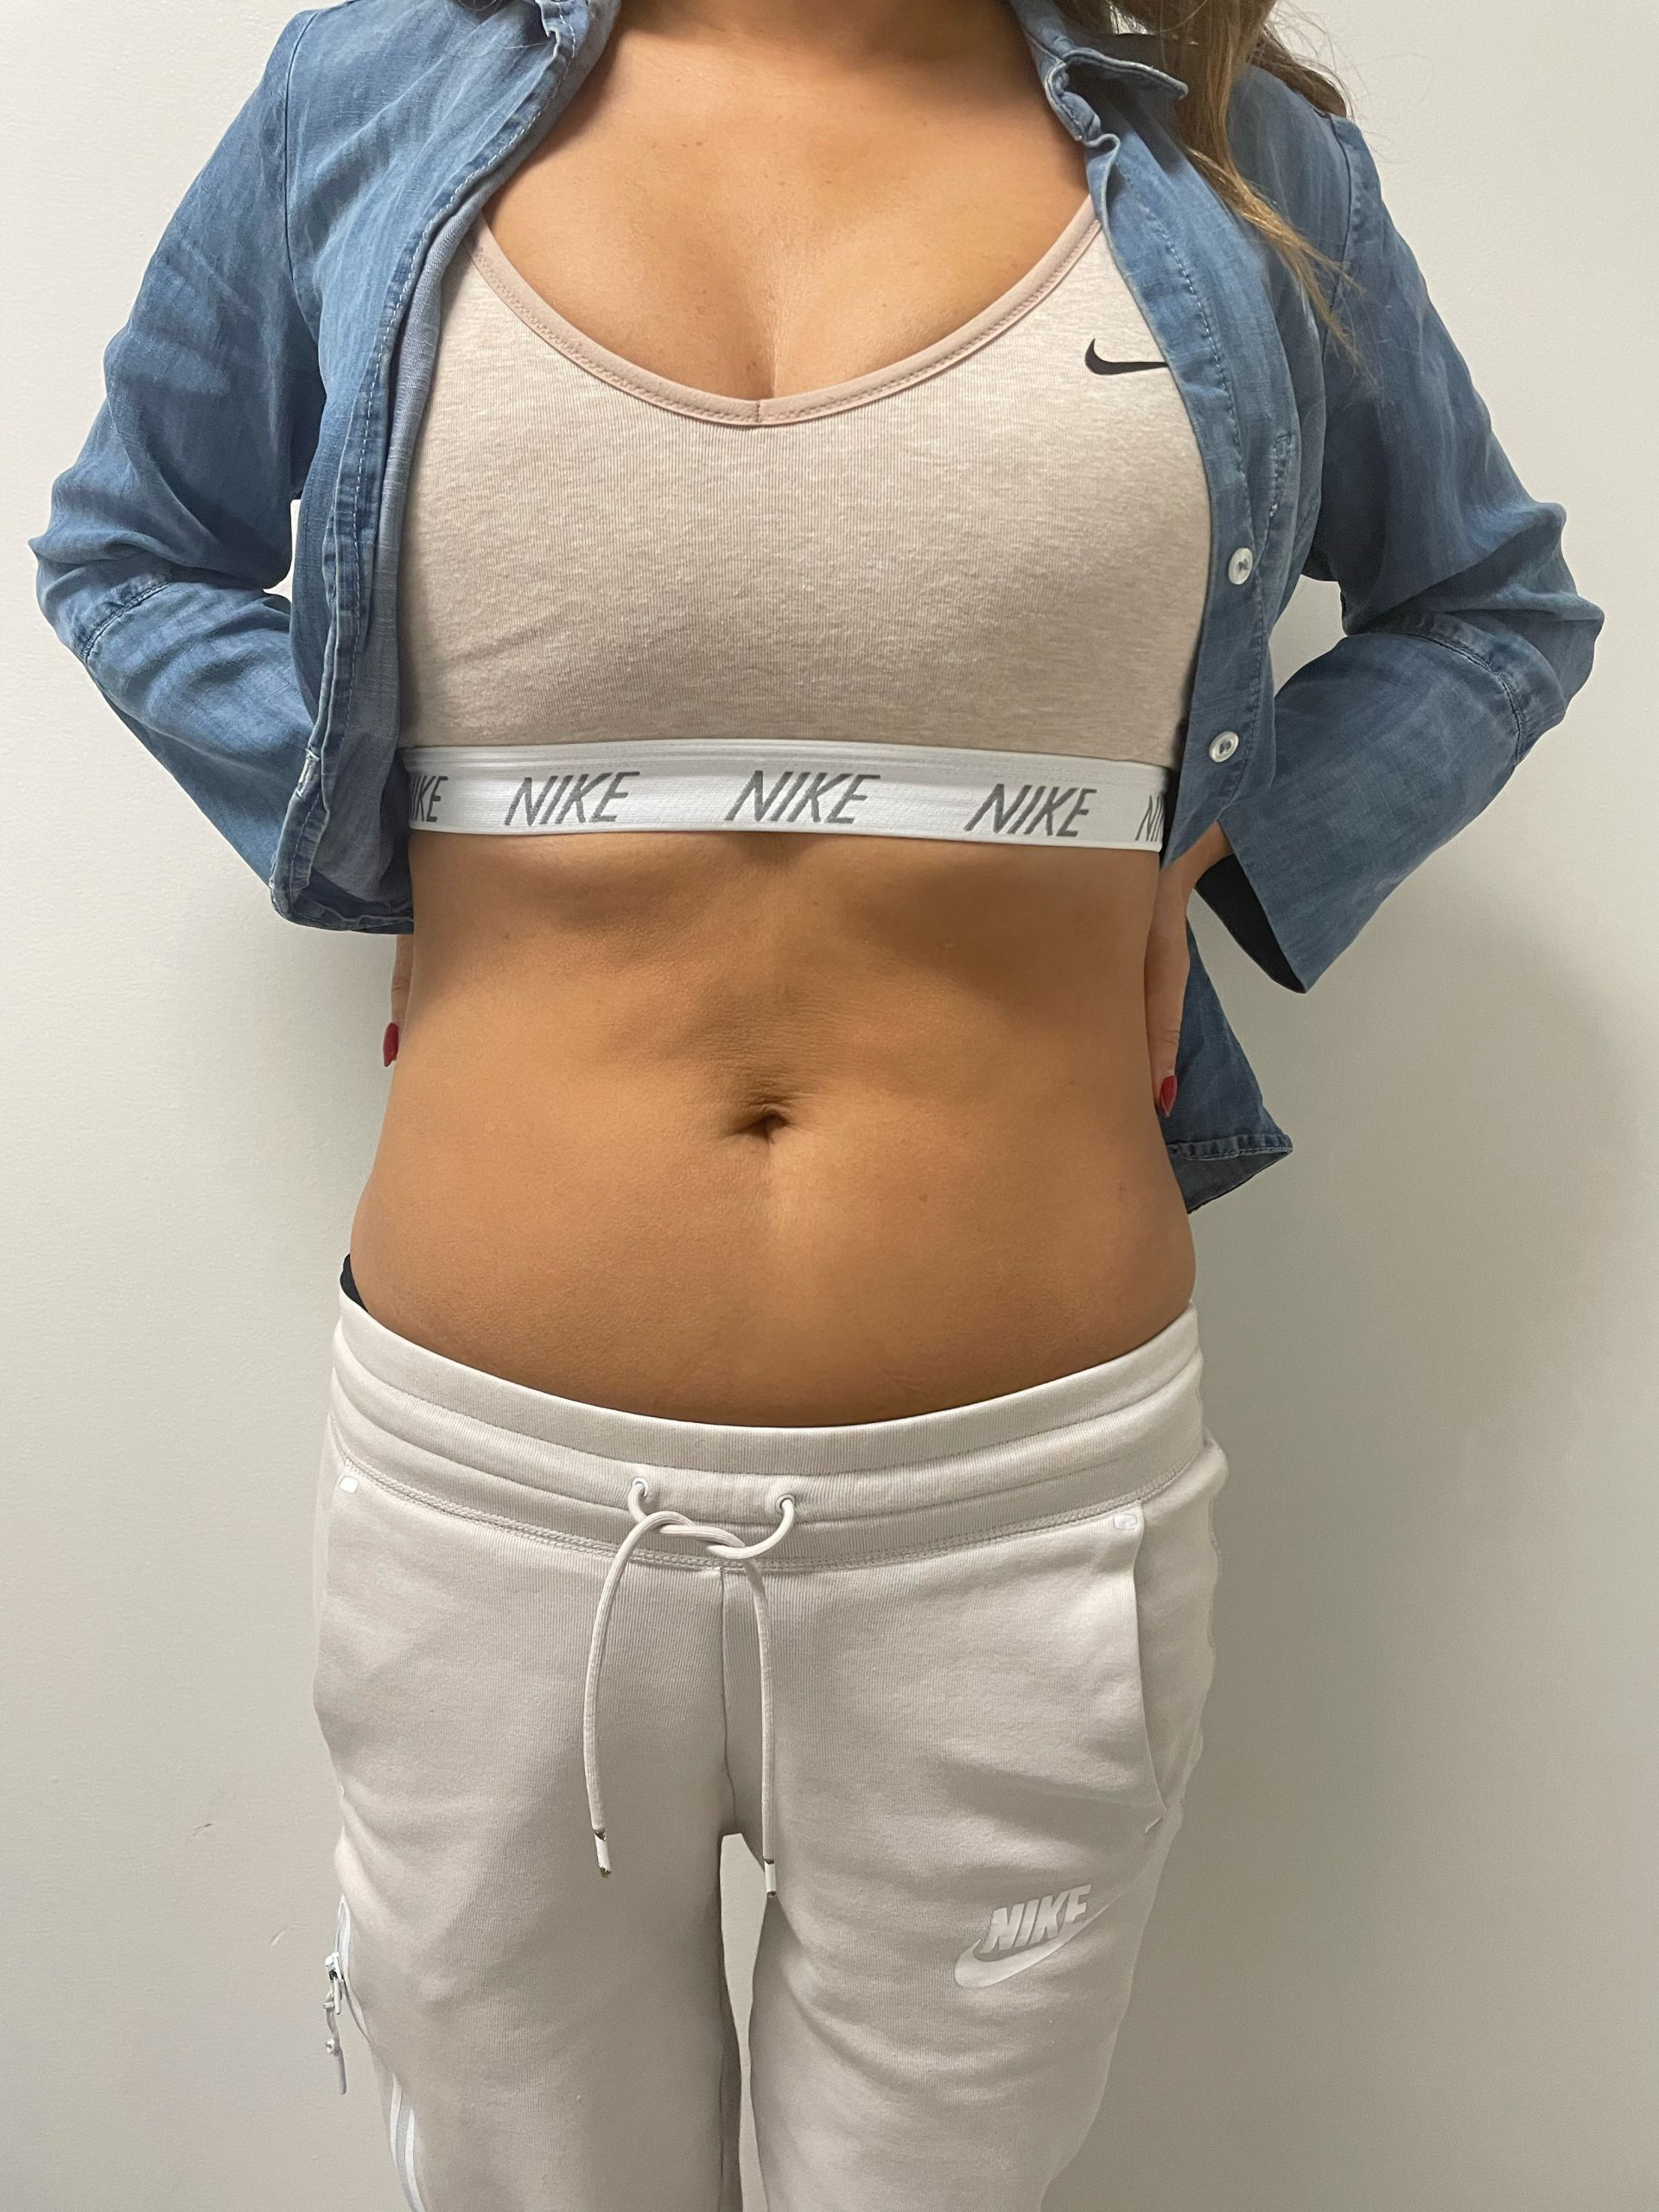 my experience with CoolSculpting, CoolToning review, CoolSculpting Treatment, CoolToning Treatment, CoolSculpting review, CoolToning review, CoolSculpting before and after, CoolToning before and after, treatments for unwanted belly fat, wellness, beauty blogger, real results of beauty treatments, how to get rid of stubborn fat, how to get rid of fat without surgery, Jen Worman, Red Soles and Red Wine